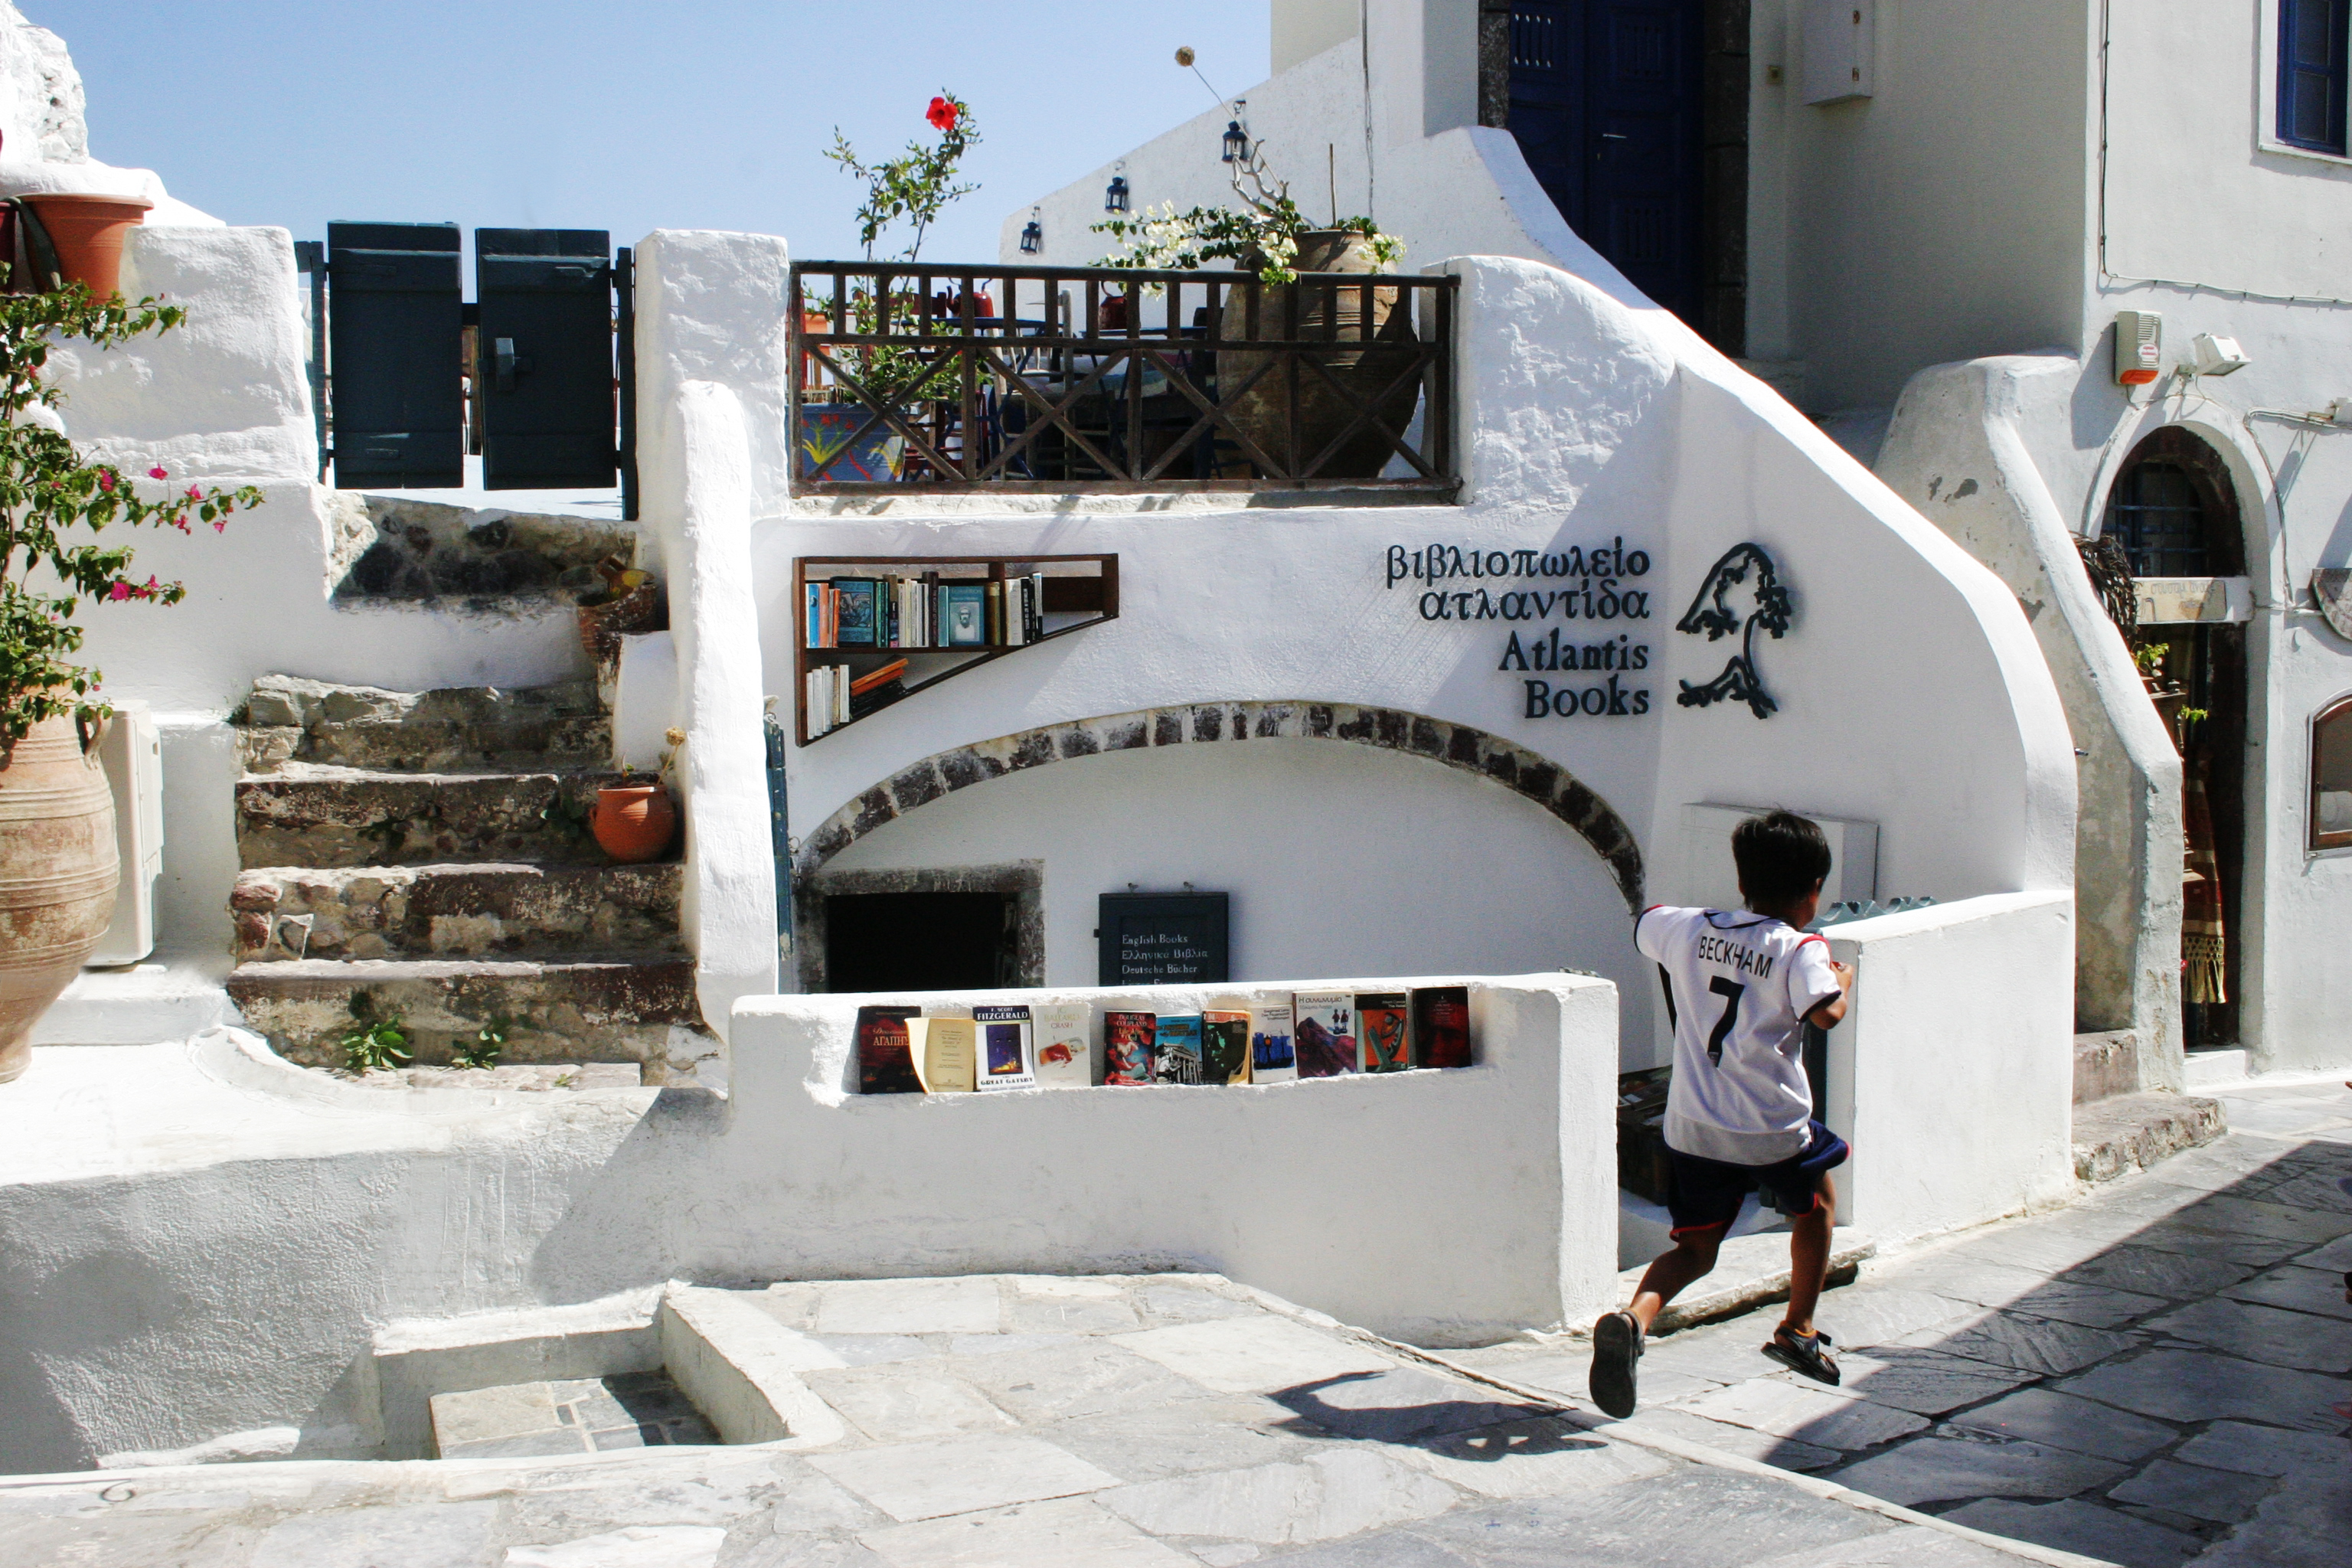 Atlantis Books Bookstore Santorini Greece